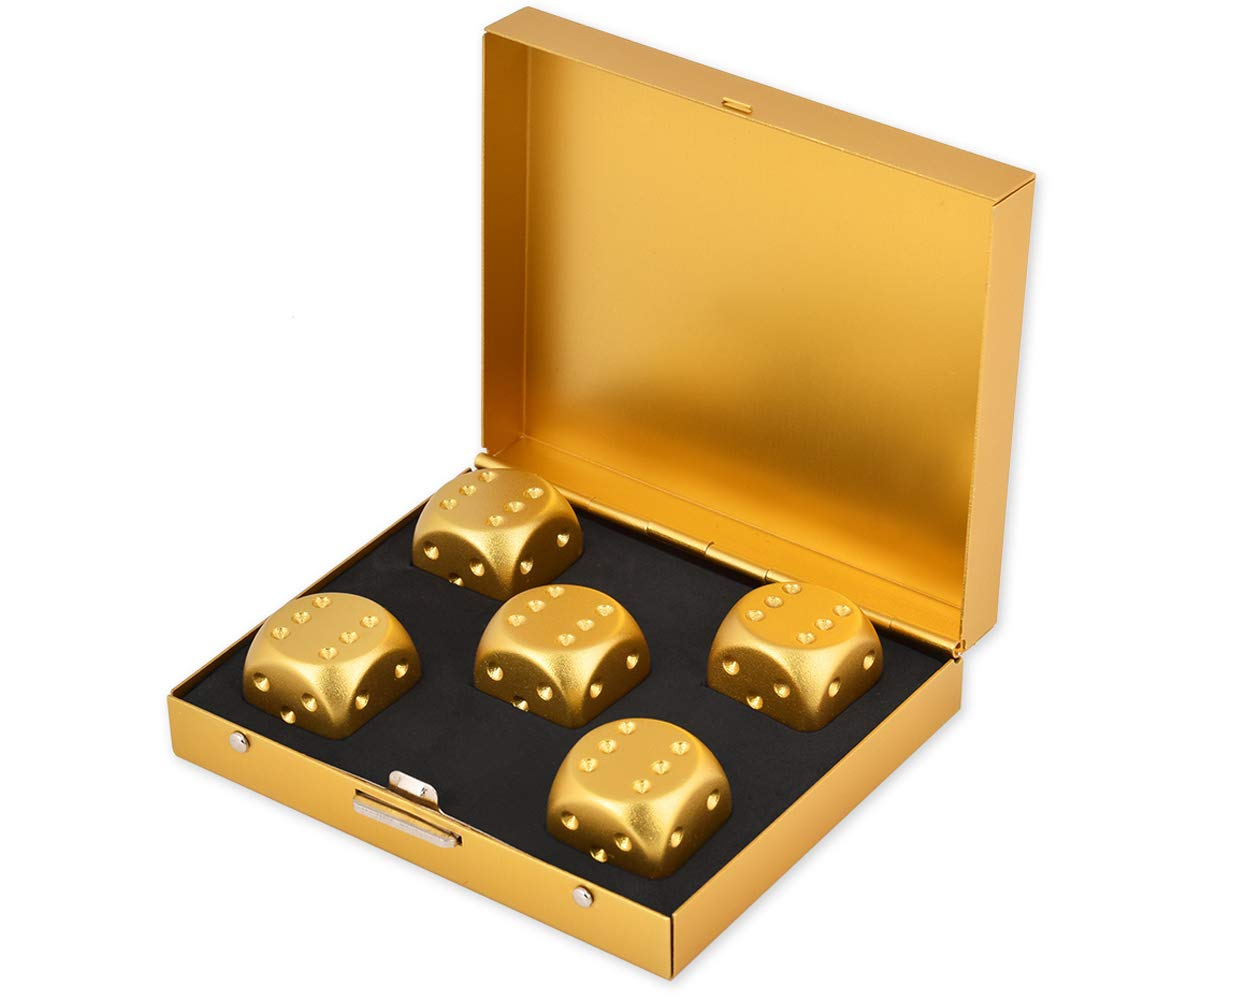 DS.DISTINCTIVE STYLE Aluminum Alloy Dice 5 Pieces 16mm Portable Dices with Metal Box 6 Sided Dice Poker Party Game Toy Portable Dice Man - Golden by DS. DISTINCTIVE STYLE